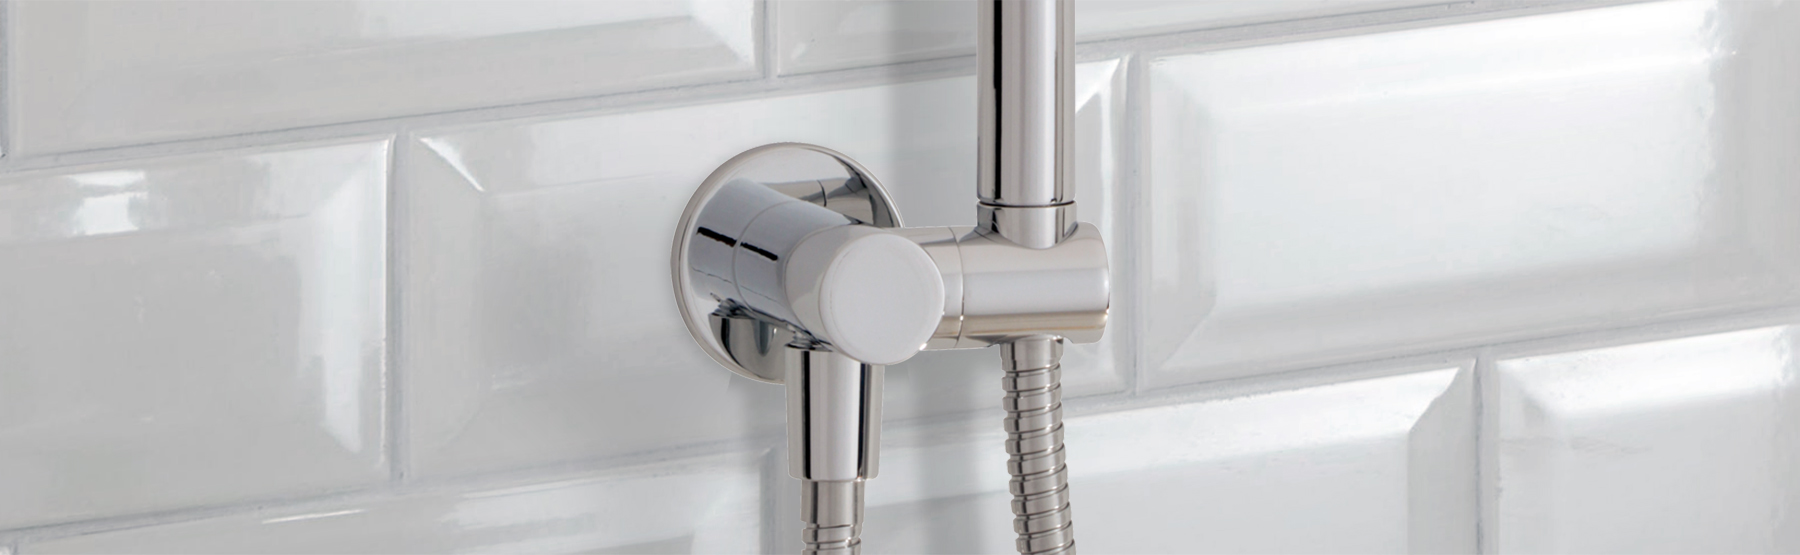 Handshower Sets